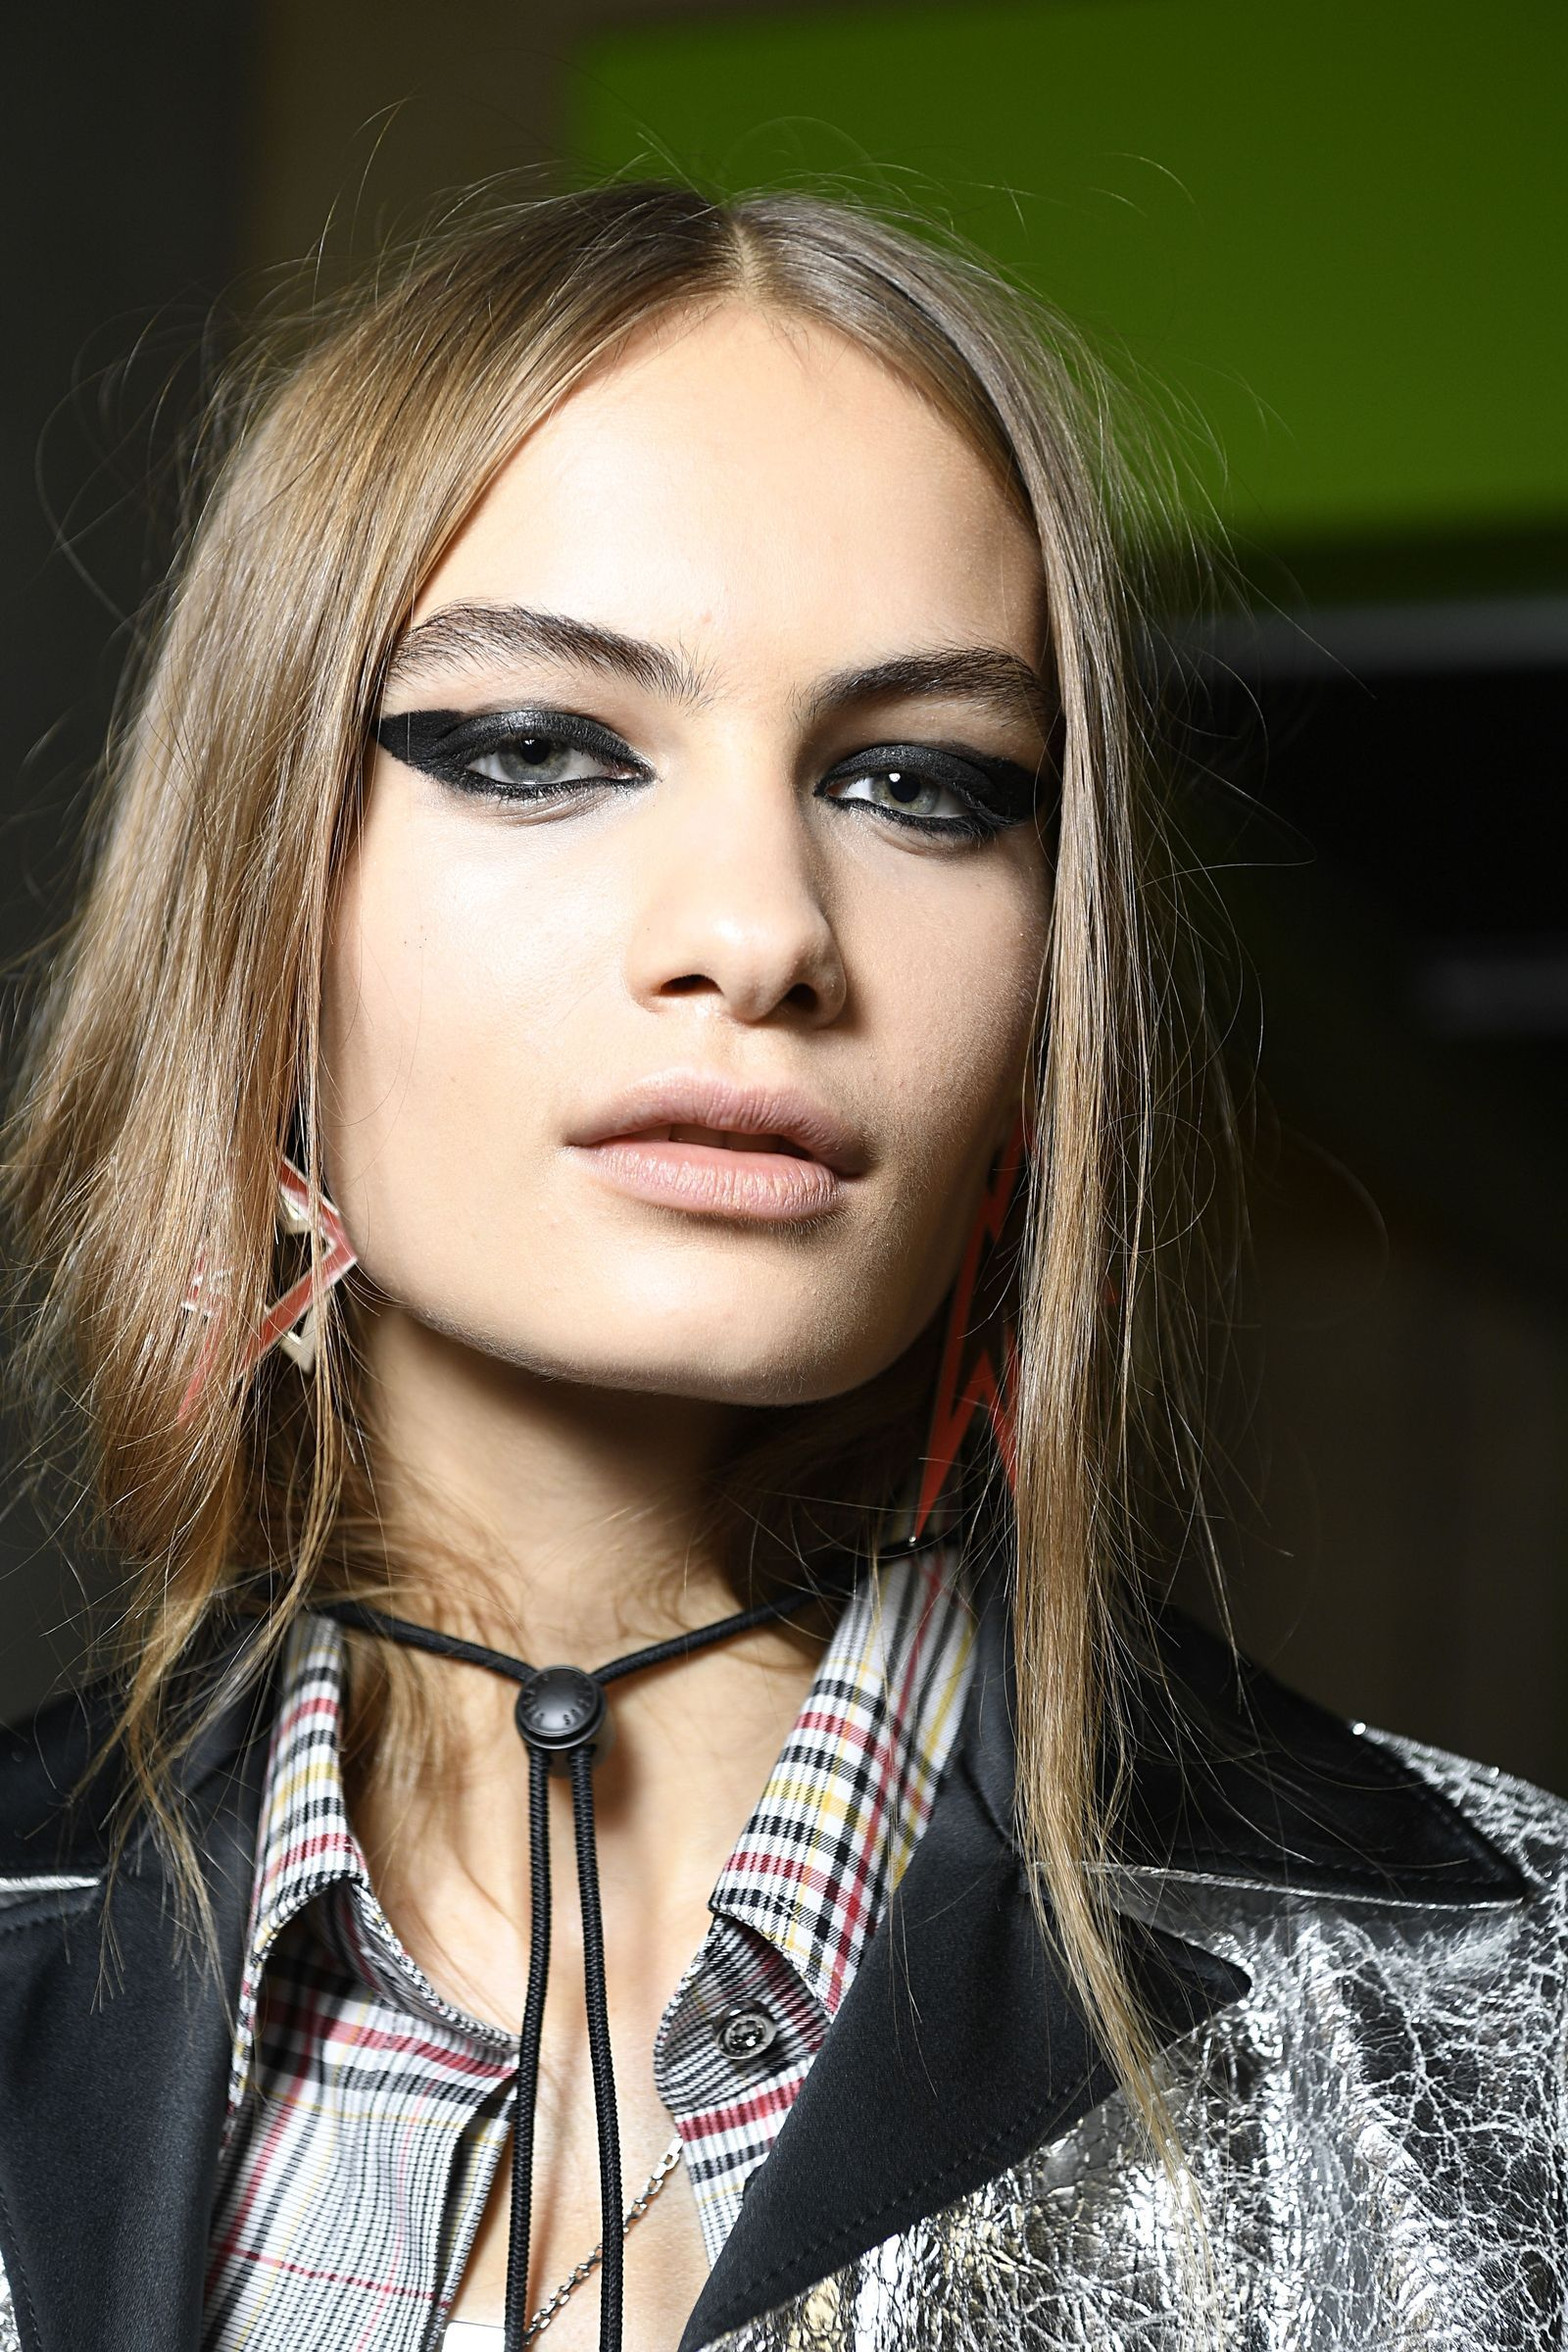 The 8 top beauty trends spotted at Fashion Week Fall